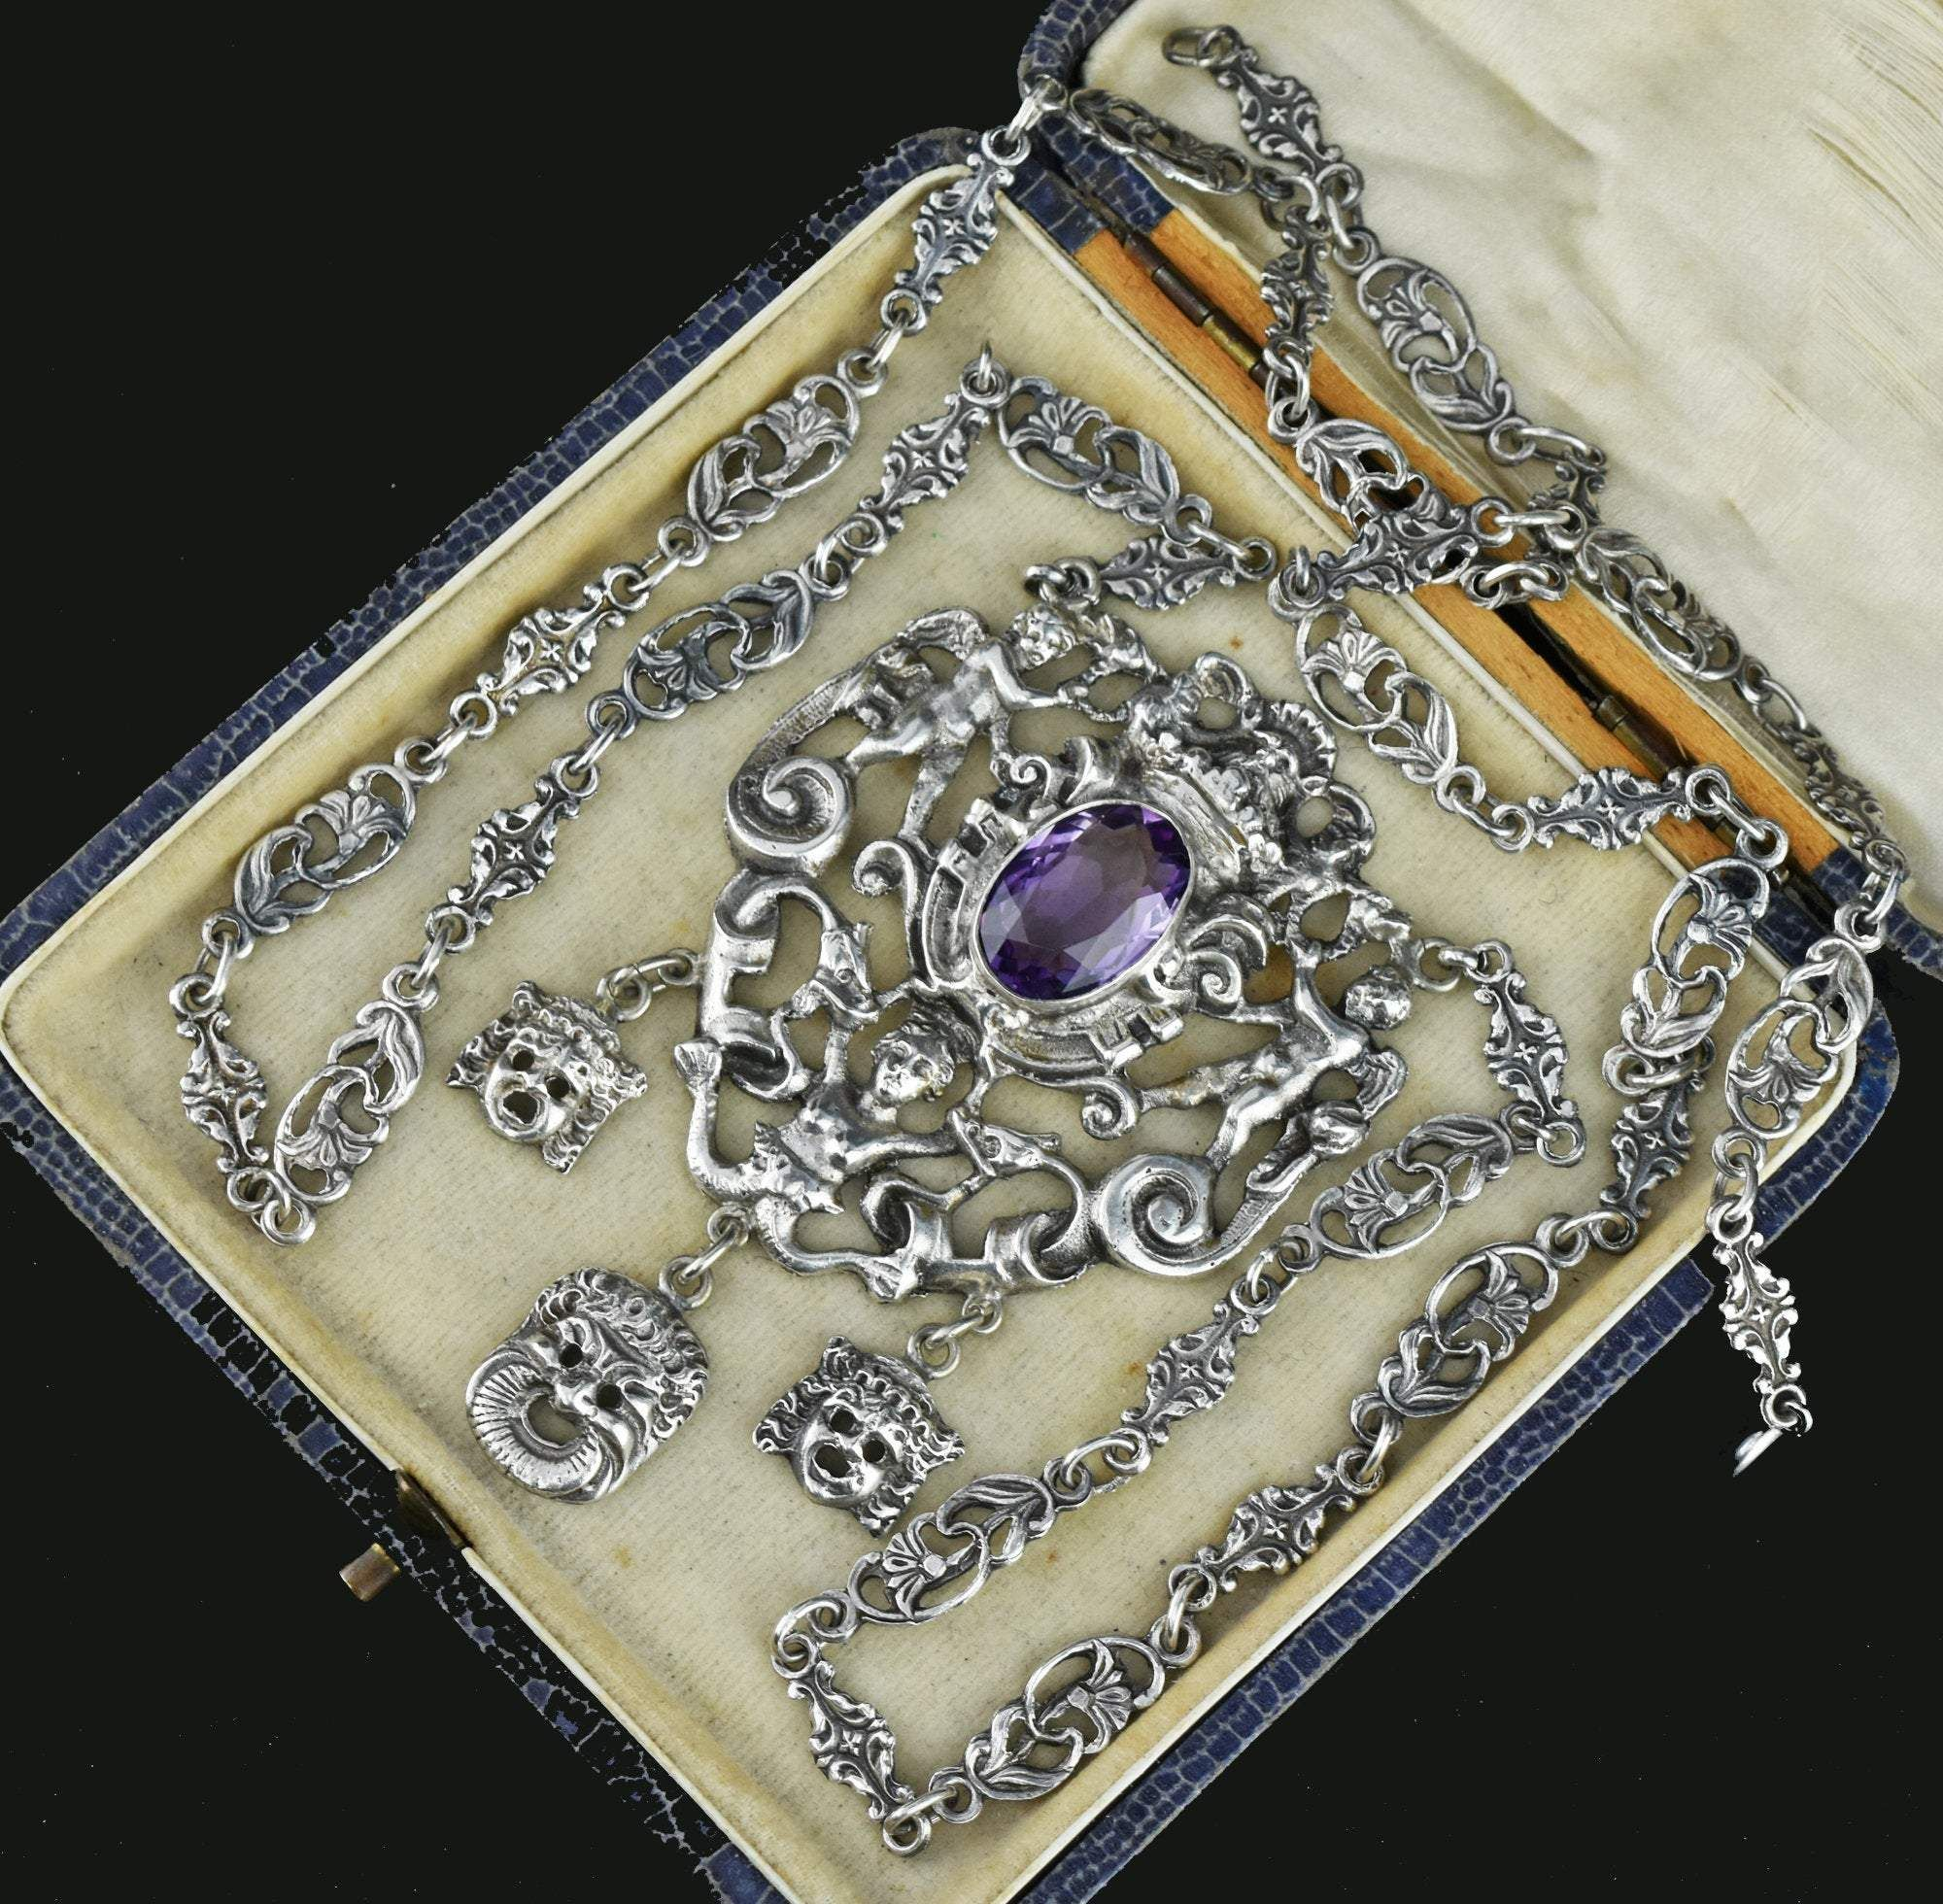 10+ Best place to sell vintage jewelry online ideas